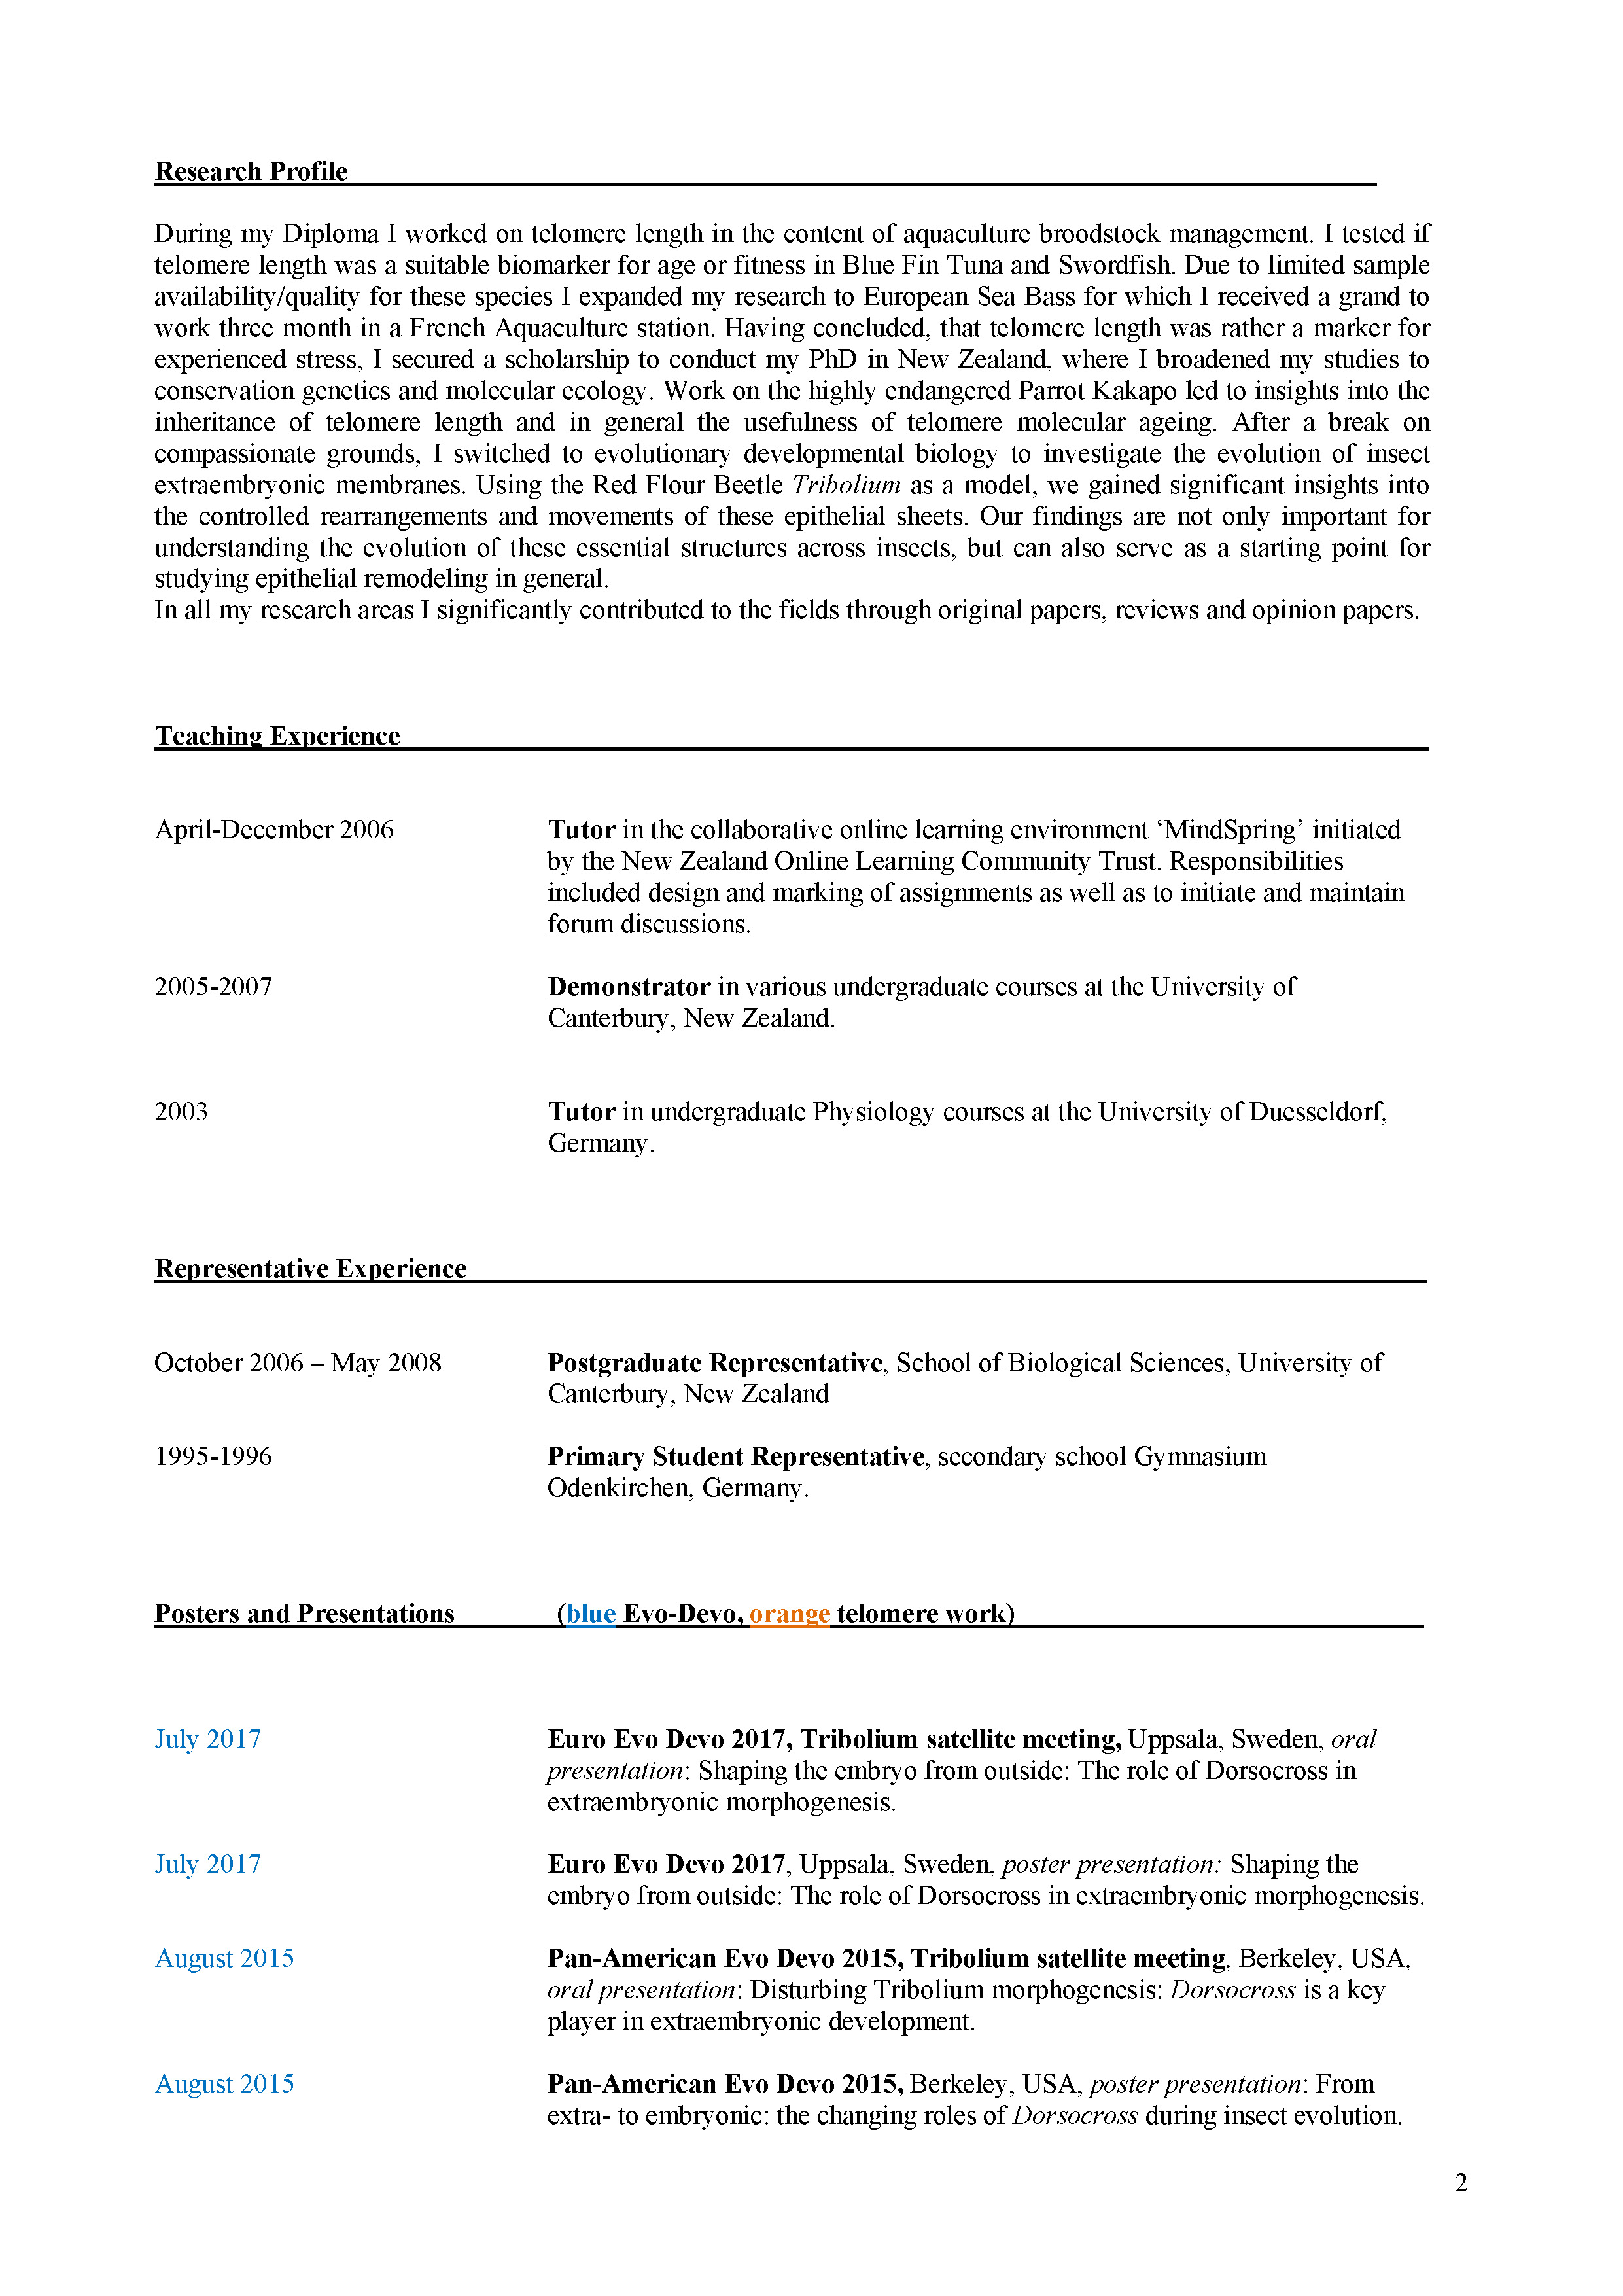 CV 2016-3 colourfull for homepage jpg_Page_2